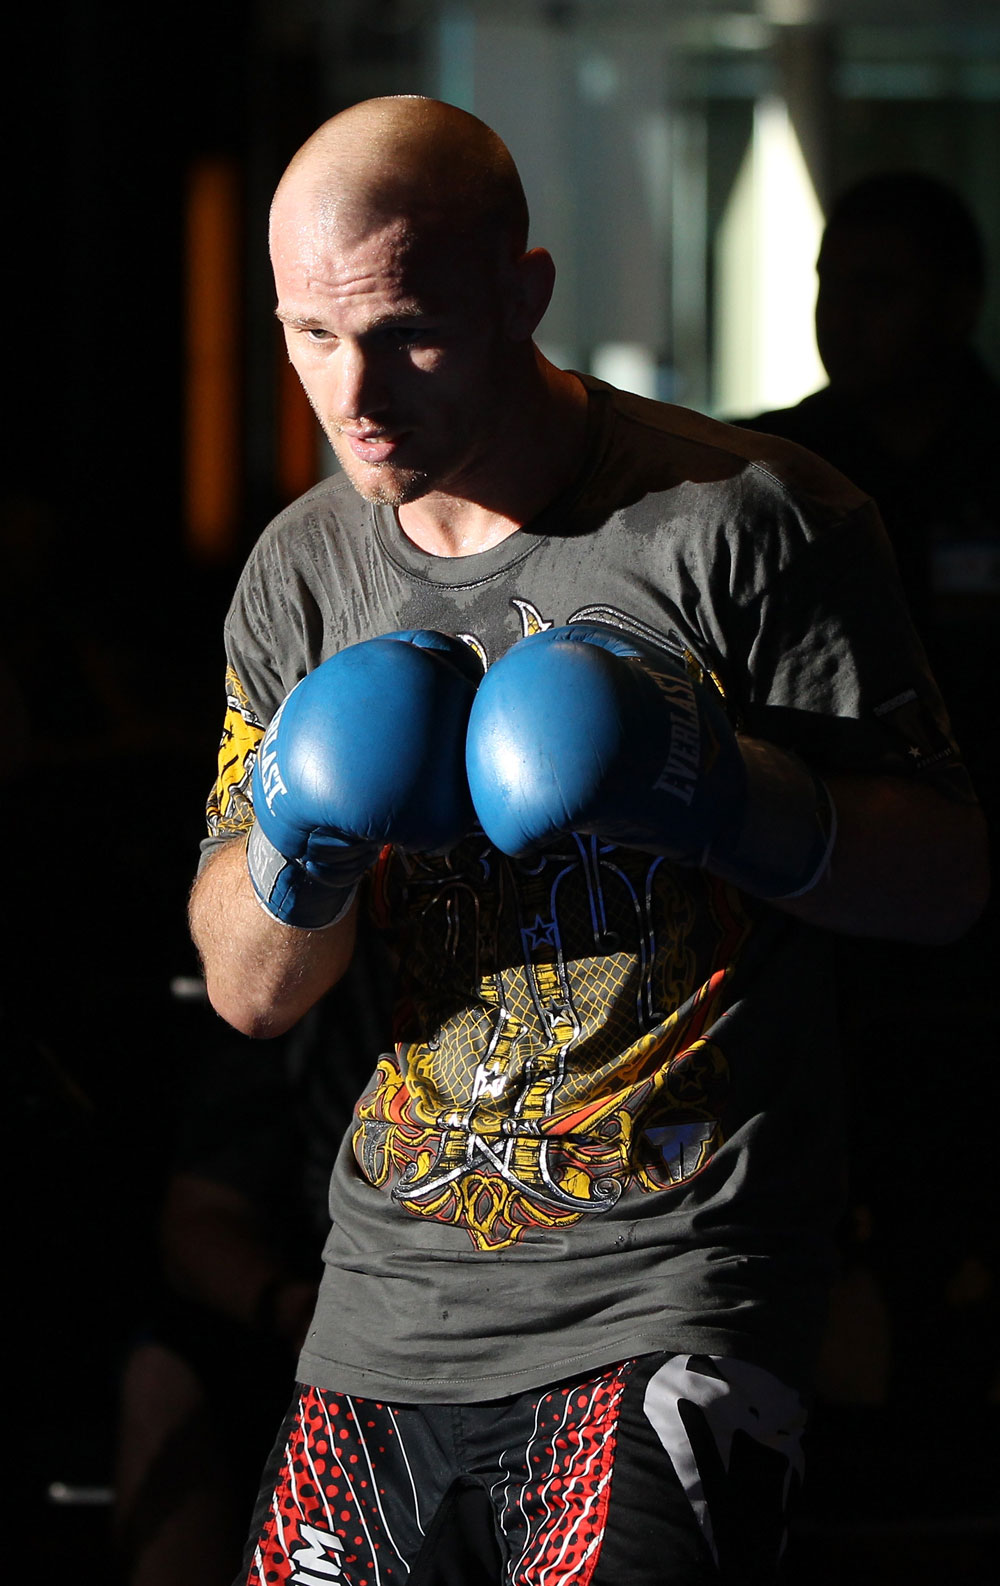 SYDNEY, AUSTRALIA - FEBRUARY 28:  Martin Kampmann works out for the media during the UFC on FX open workouts at the Star Casino on February 28, 2012 in Sydney, Australia.  (Photo by Josh Hedges/Zuffa LLC/Zuffa LLC via Getty Images) *** Local Caption *** Martin Kampmann